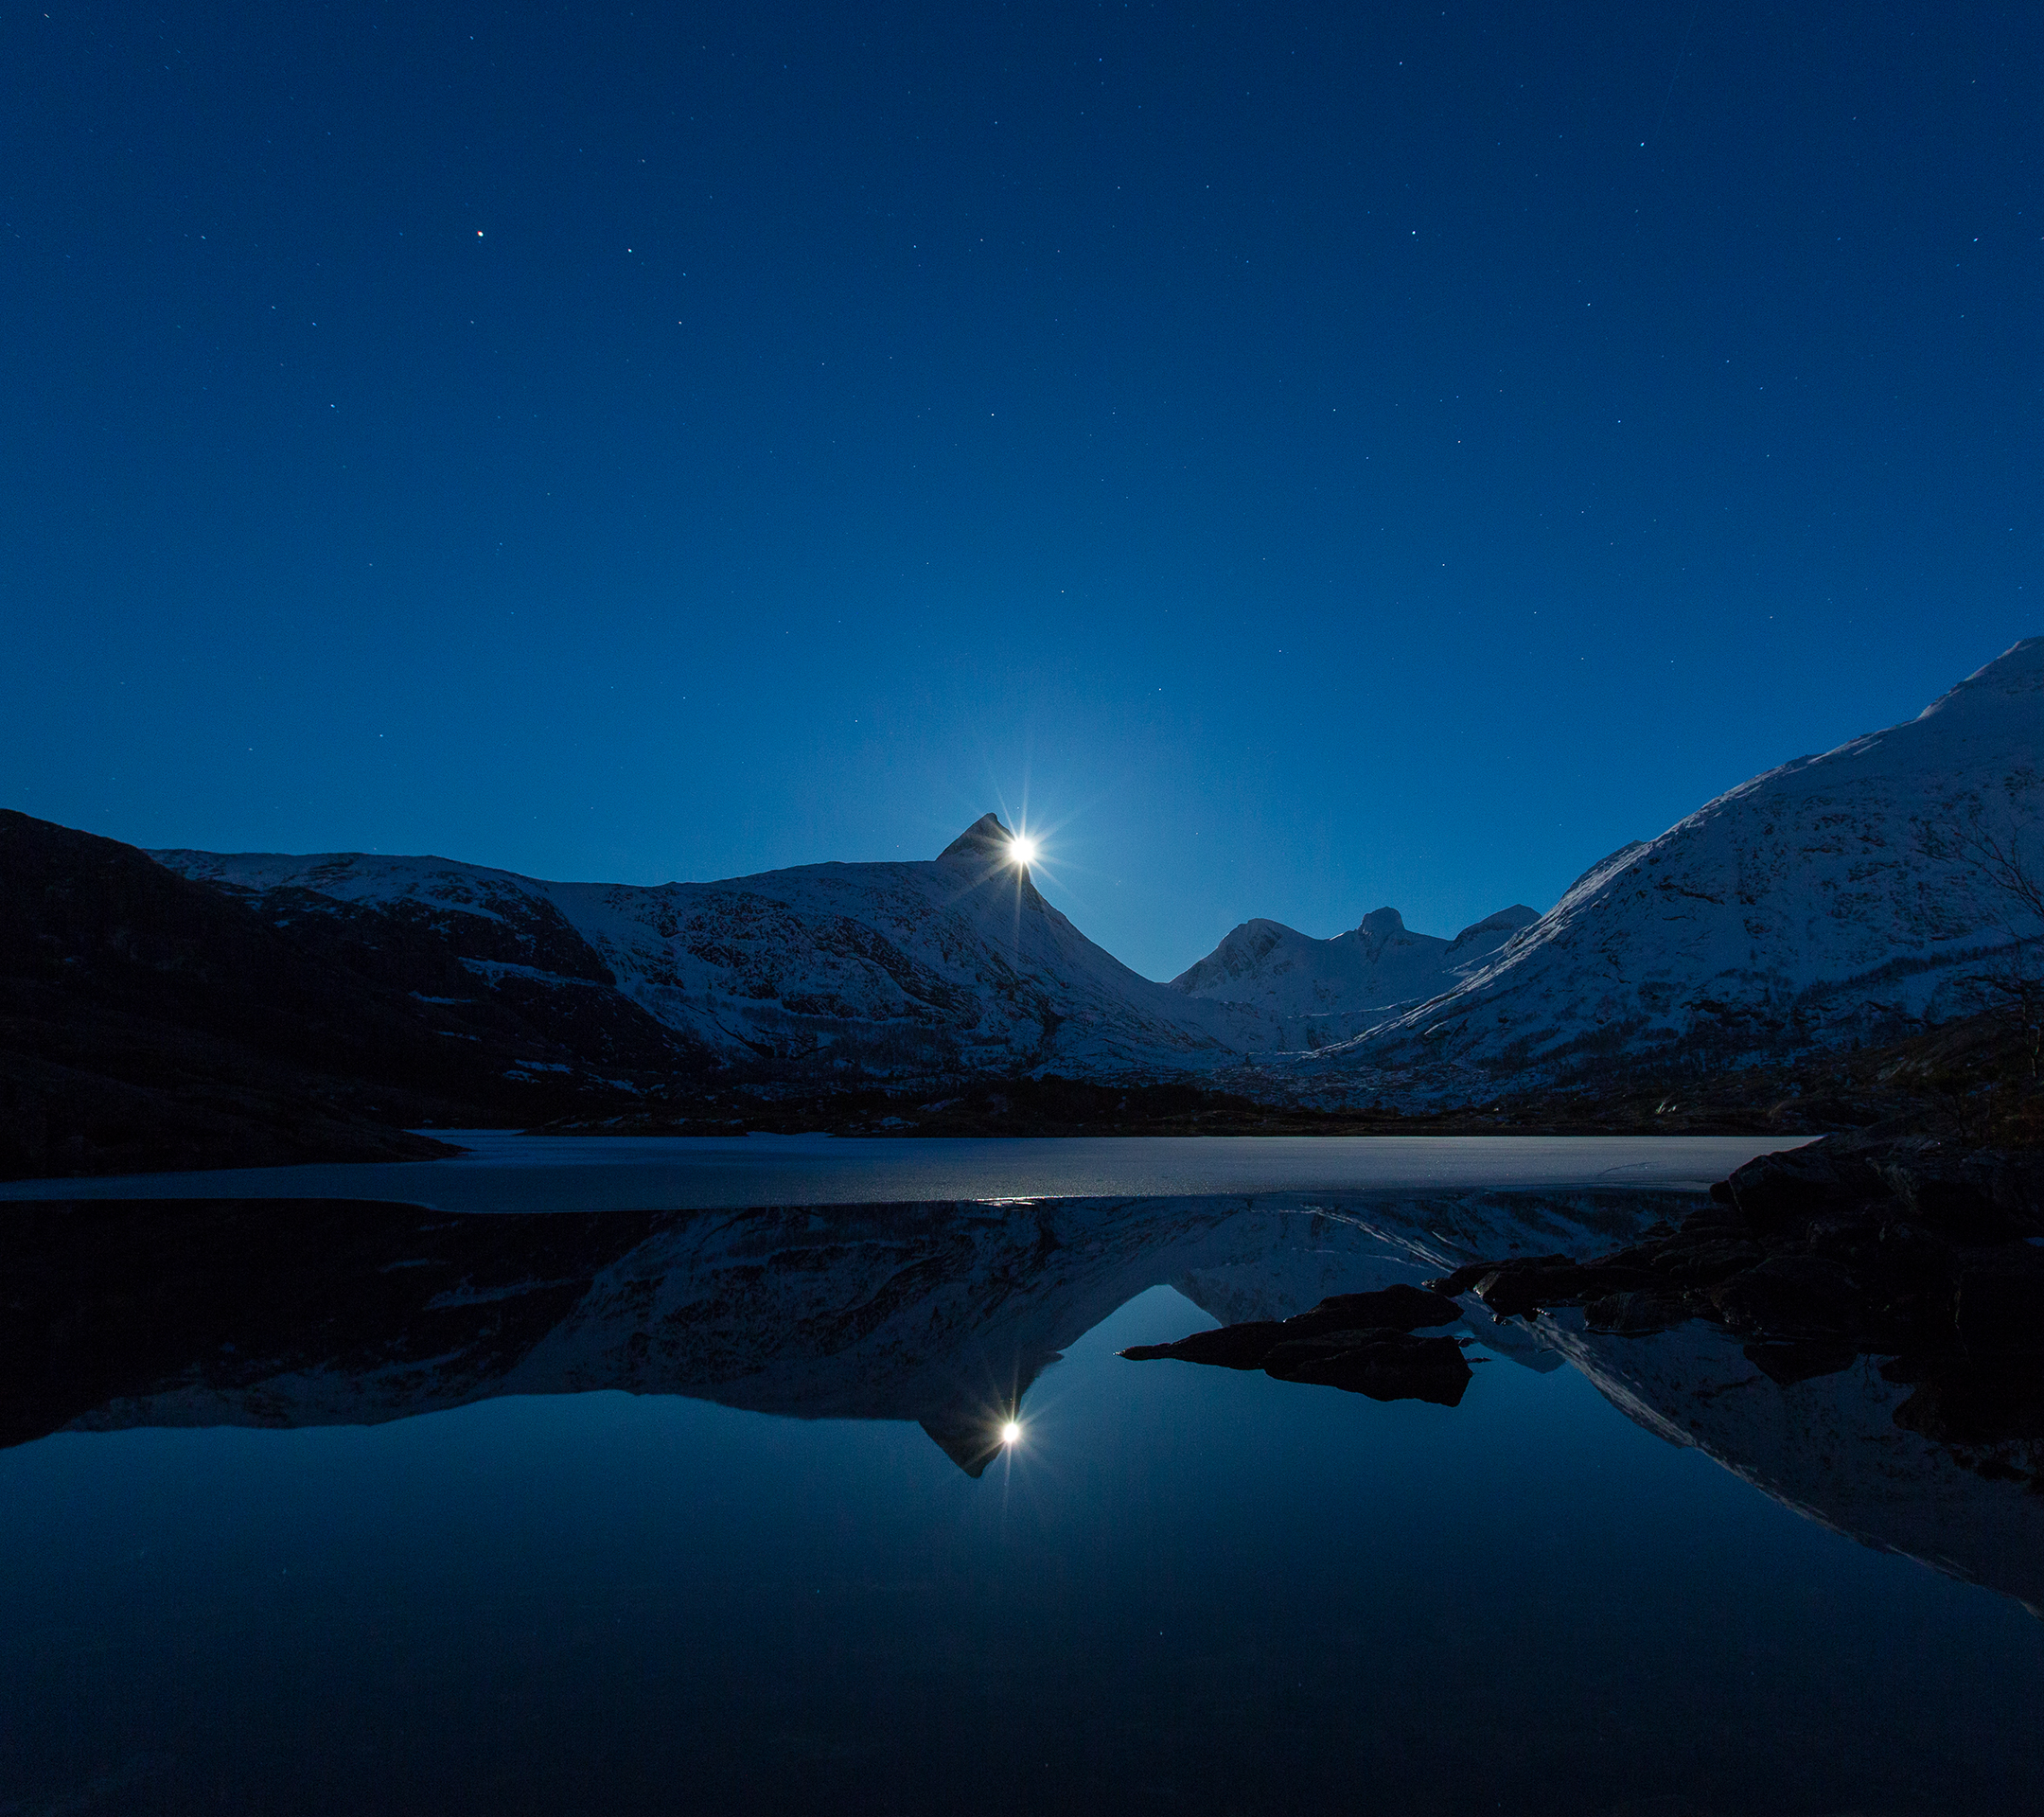 The Moon Rising Over The Mountains